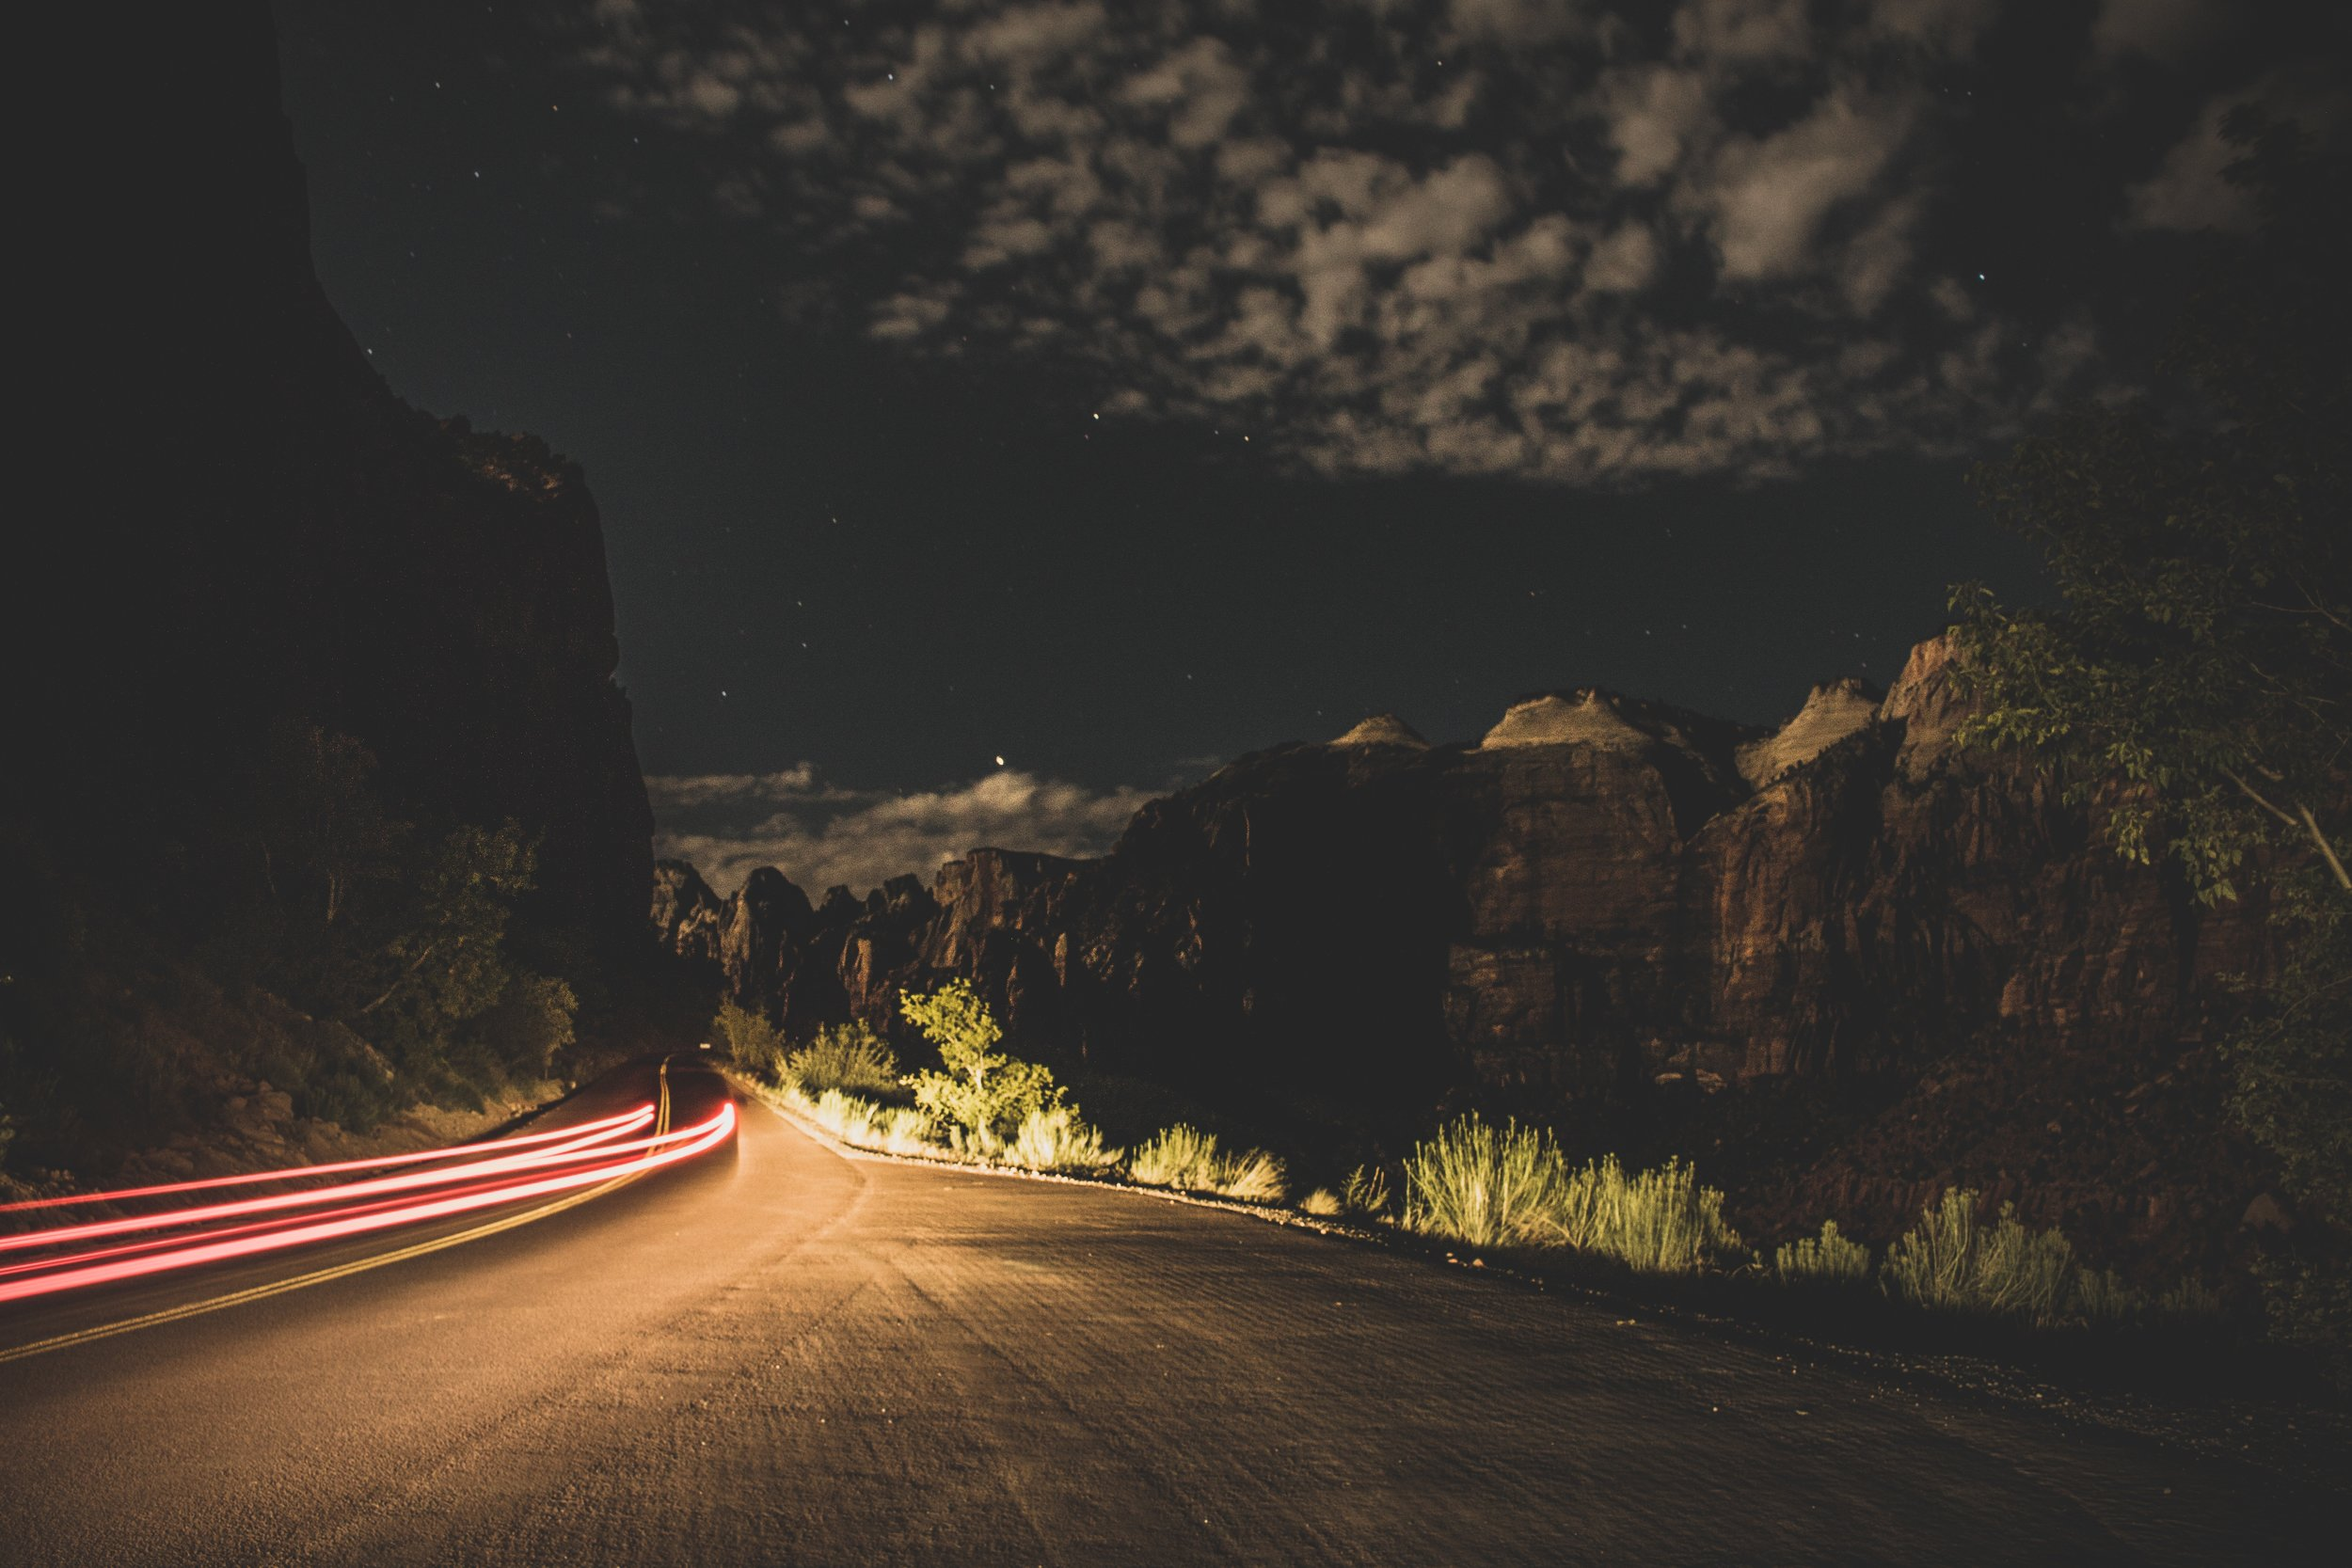 road at night.jpg